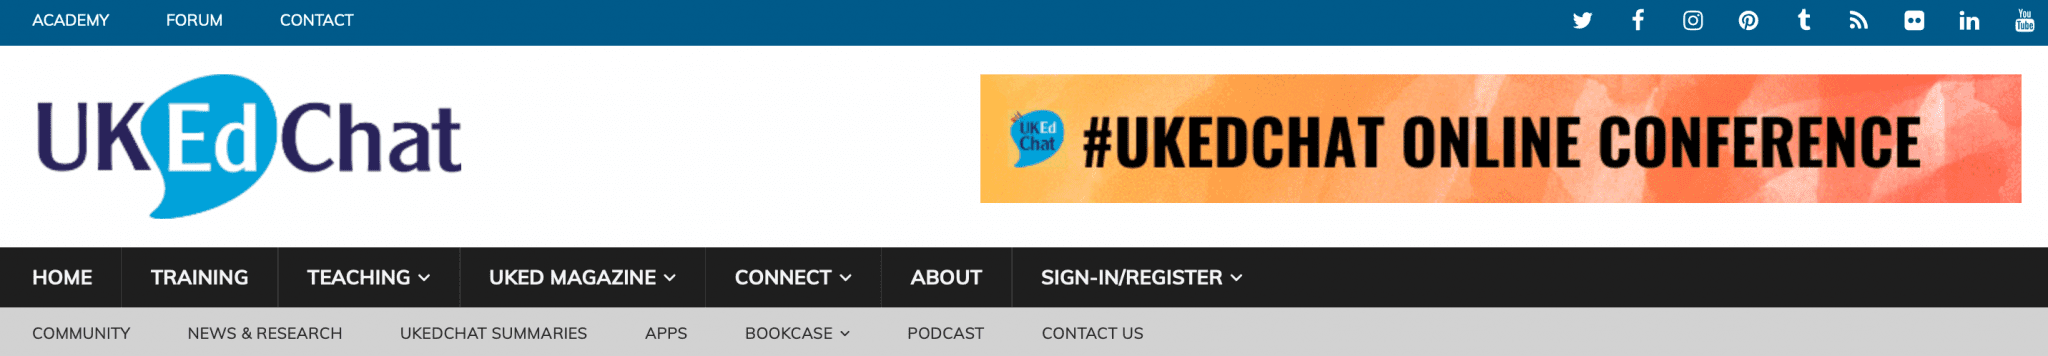 Blog | UKEdChat Newsroom